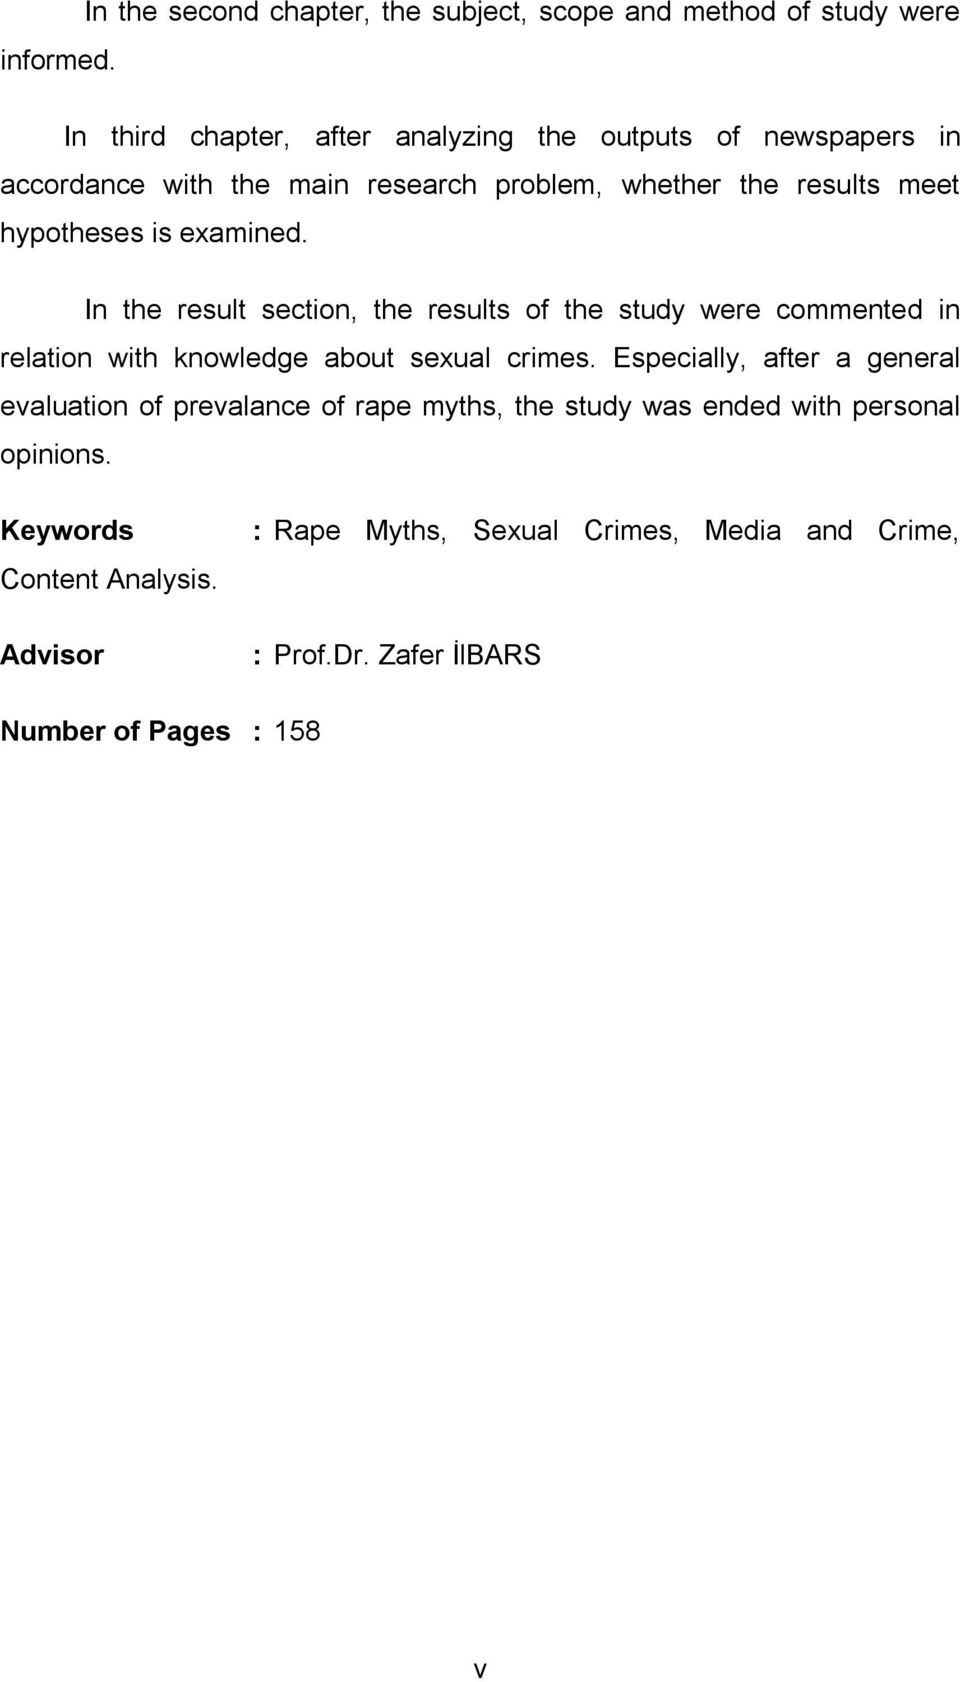 examined. In the result section, the results of the study were commented in relation with knowledge about sexual crimes.